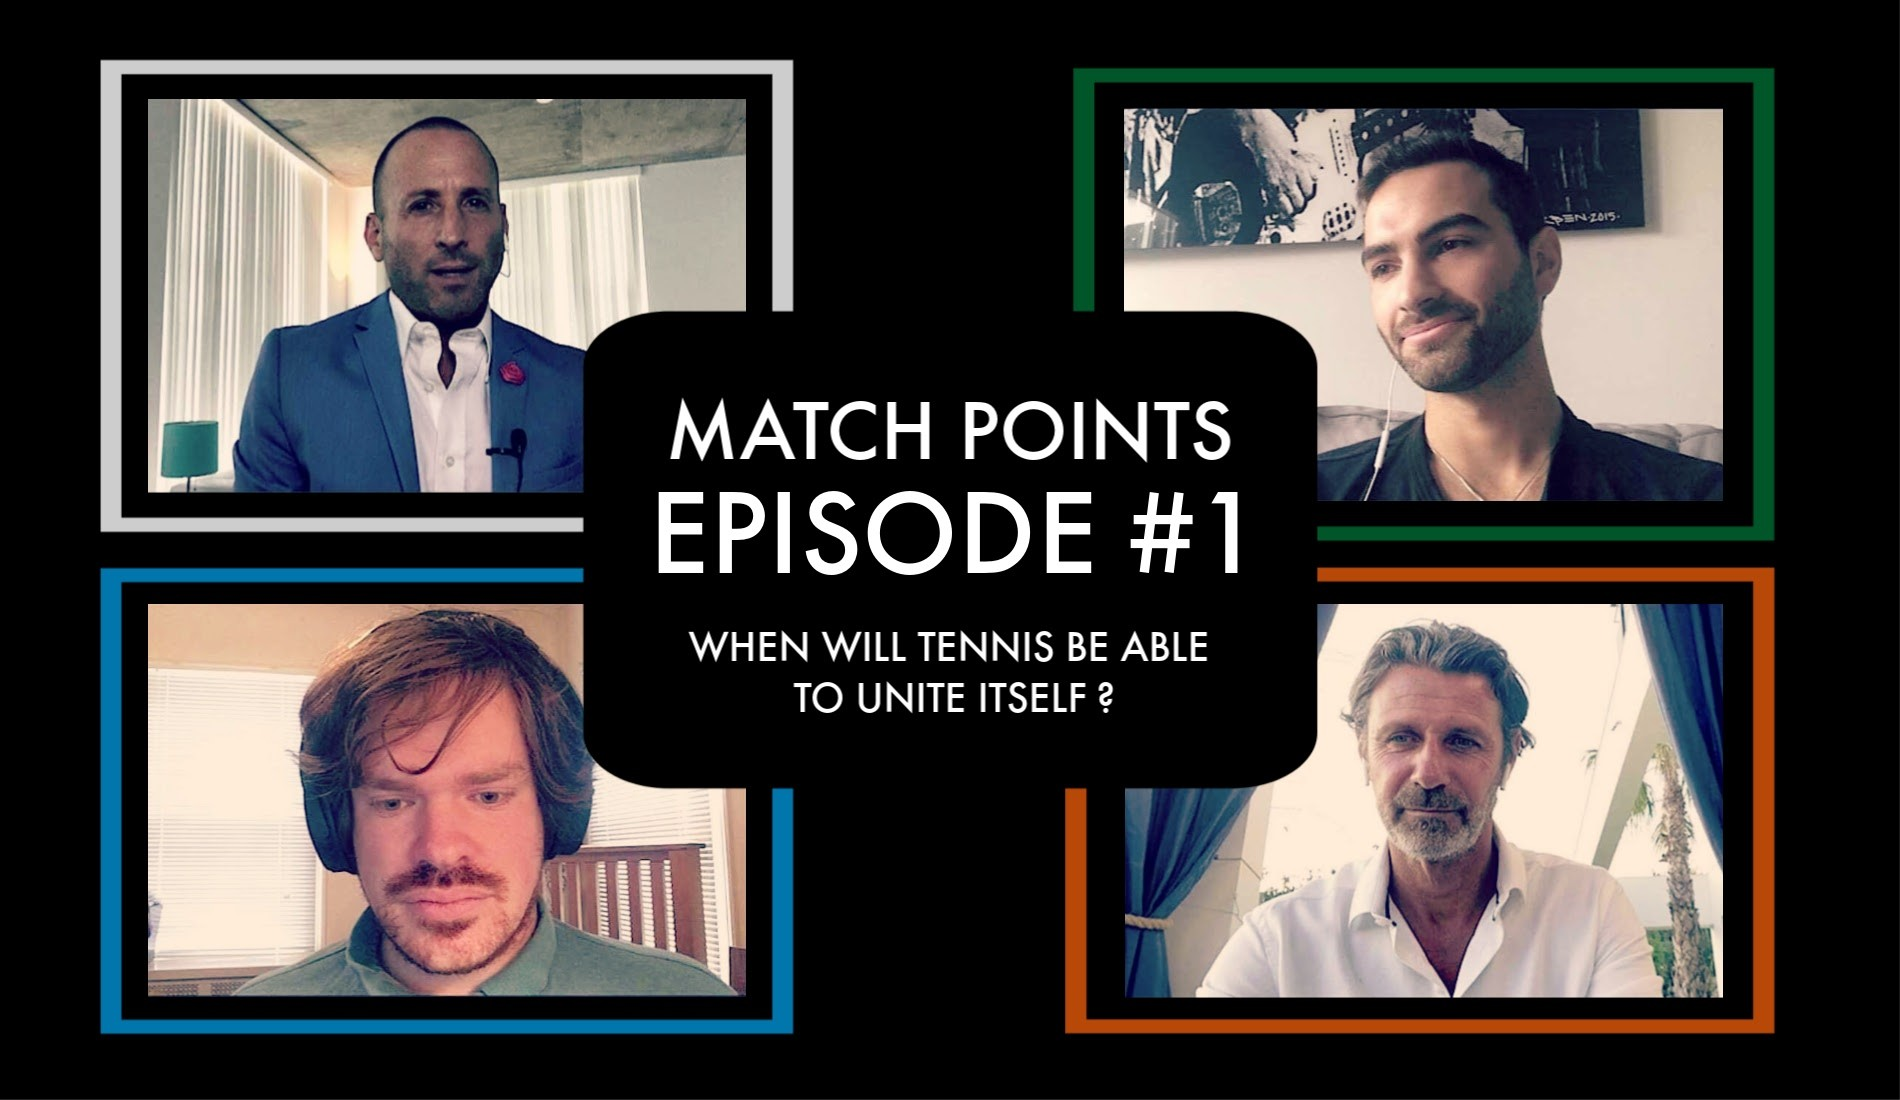 MatchPoints#1